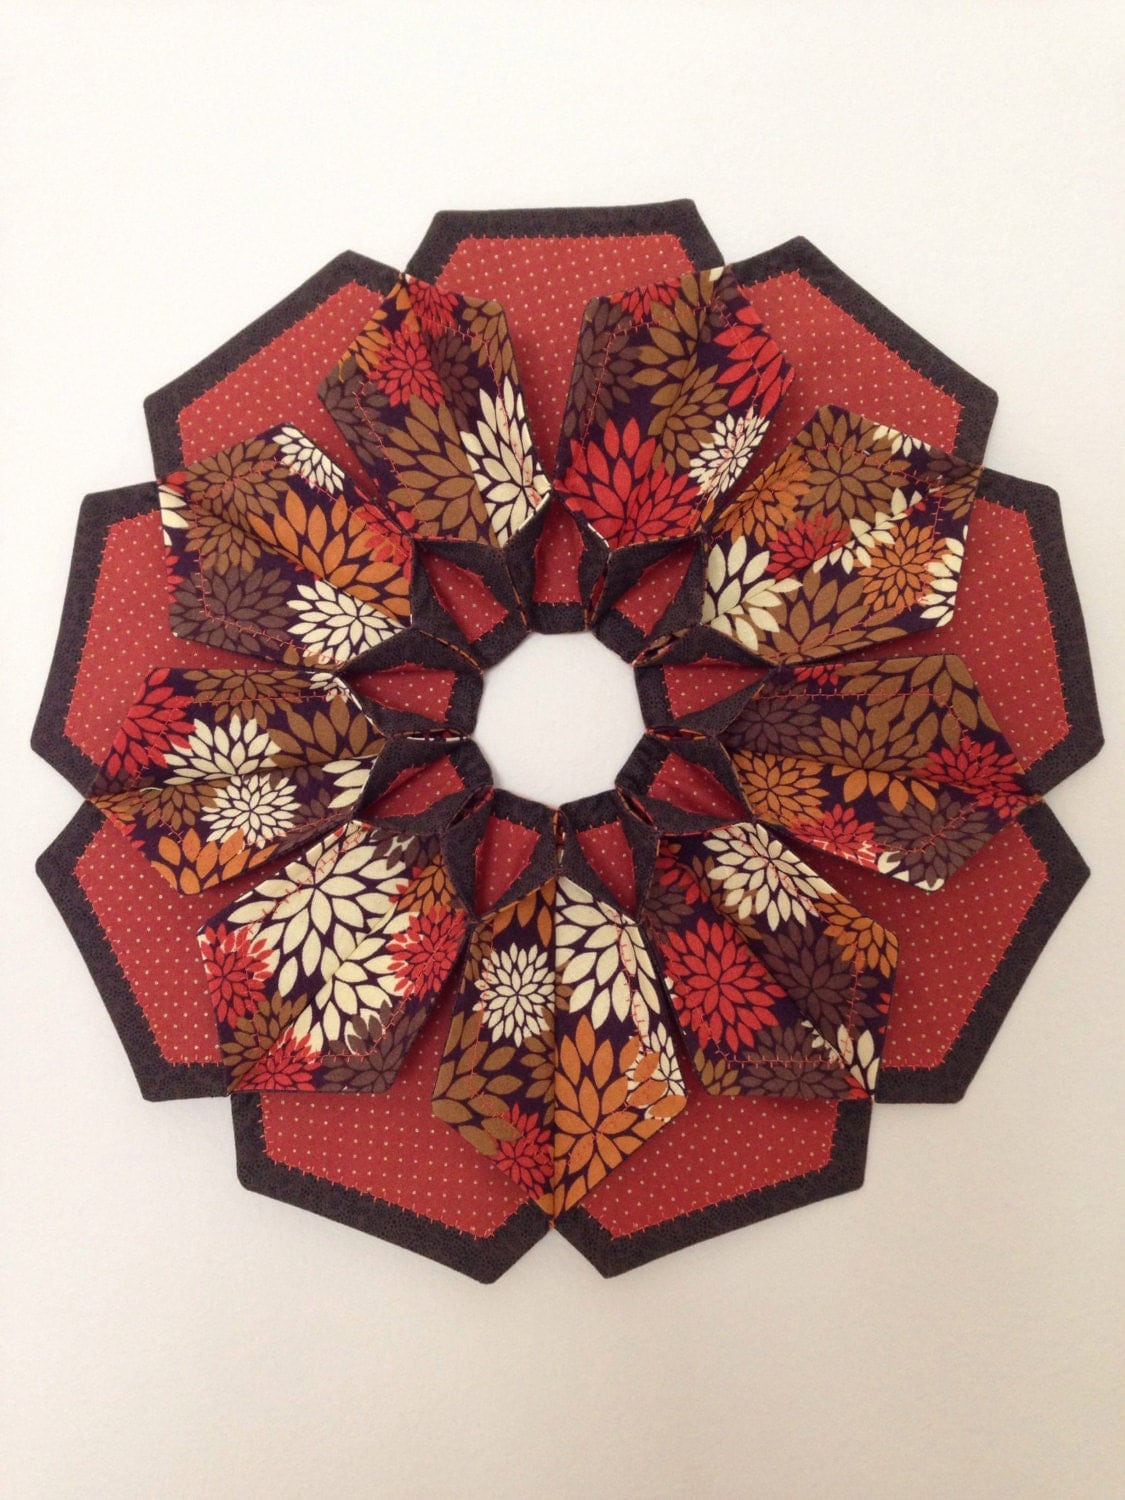 The Blossom Wreath Table Topper Candle Mat Fall